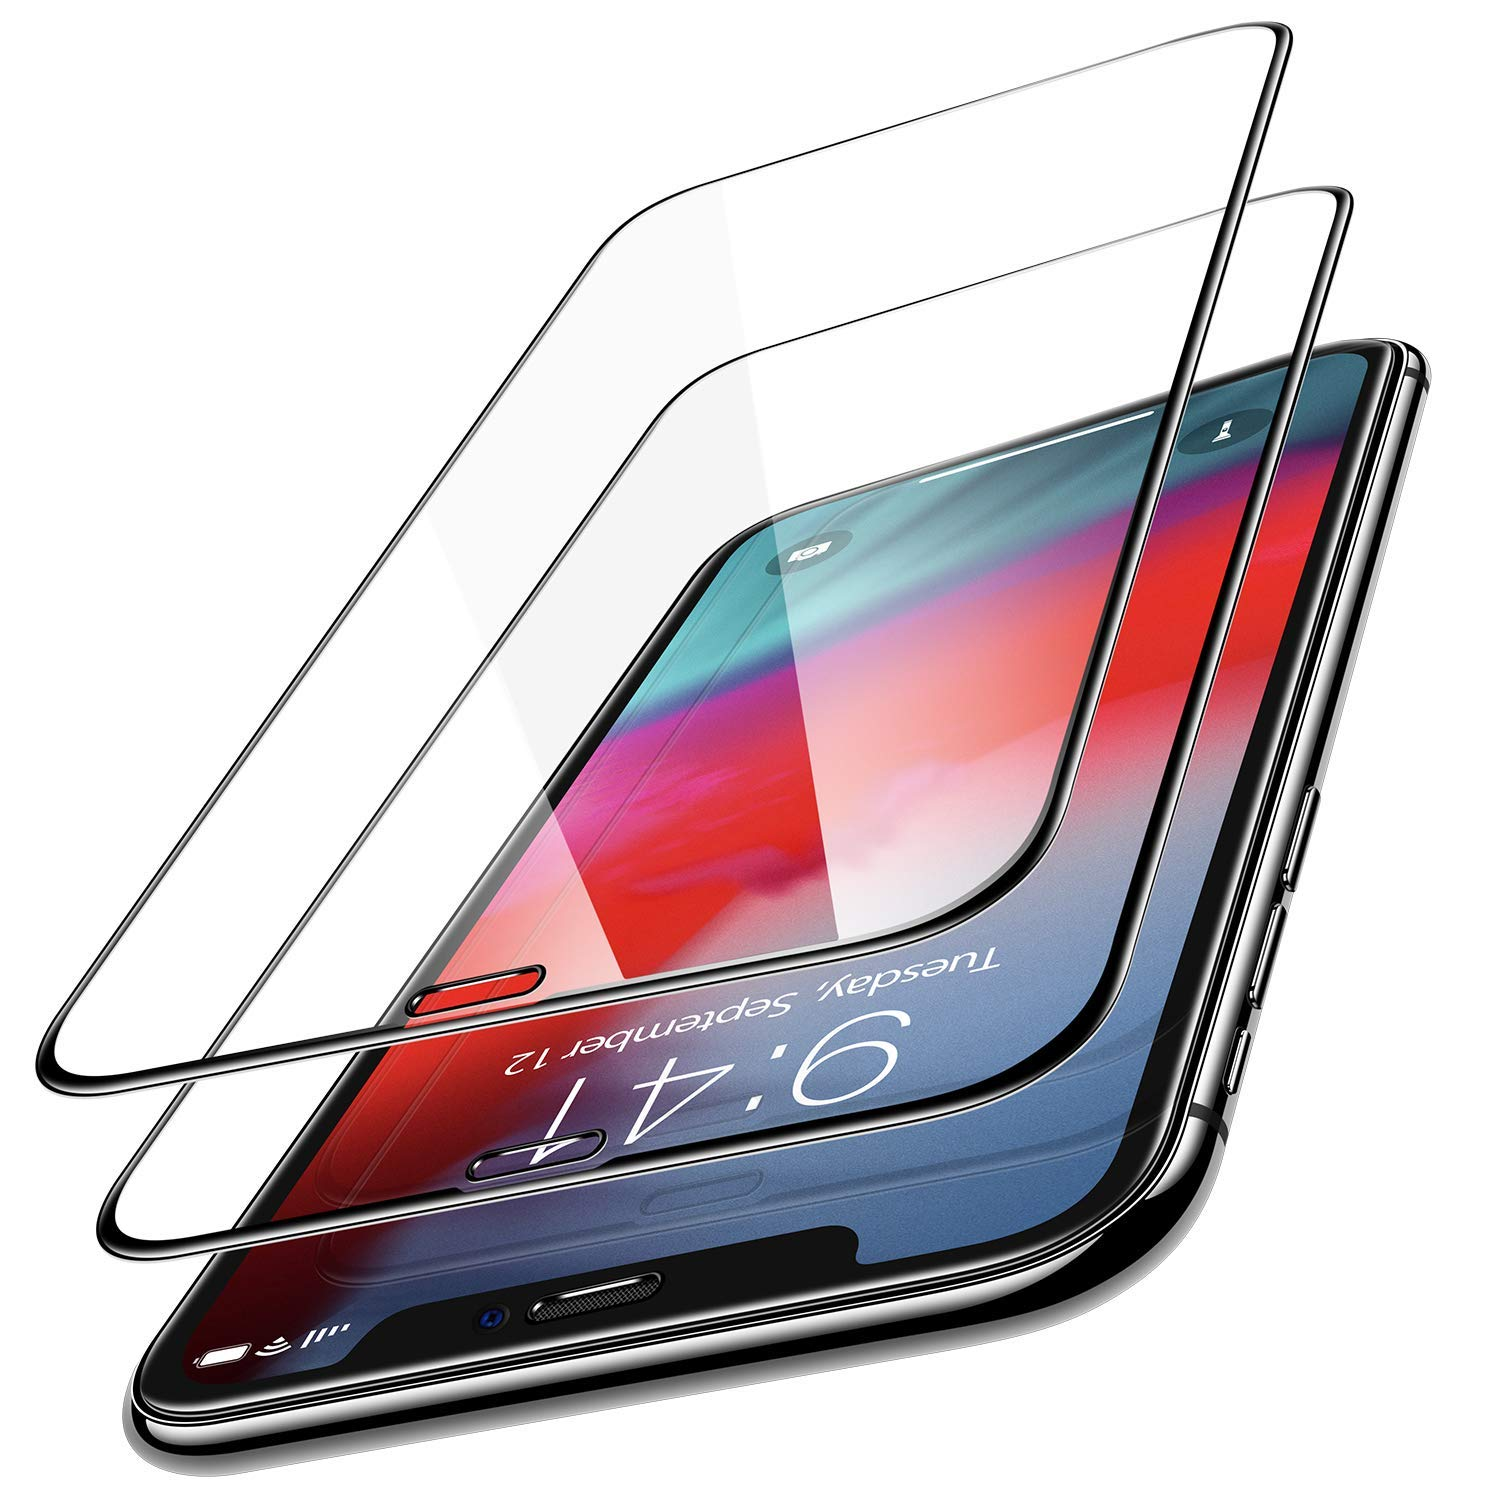 iPhone Xs Max Screen Protector, 0.25mm [Full Coverage] Tempered Glass Screen Protector for iPhone Xs Max (6.5 inch),Scratch Proof and Easy Installation with Frame, (Ultra Clear, 2-Pack) by VDTG